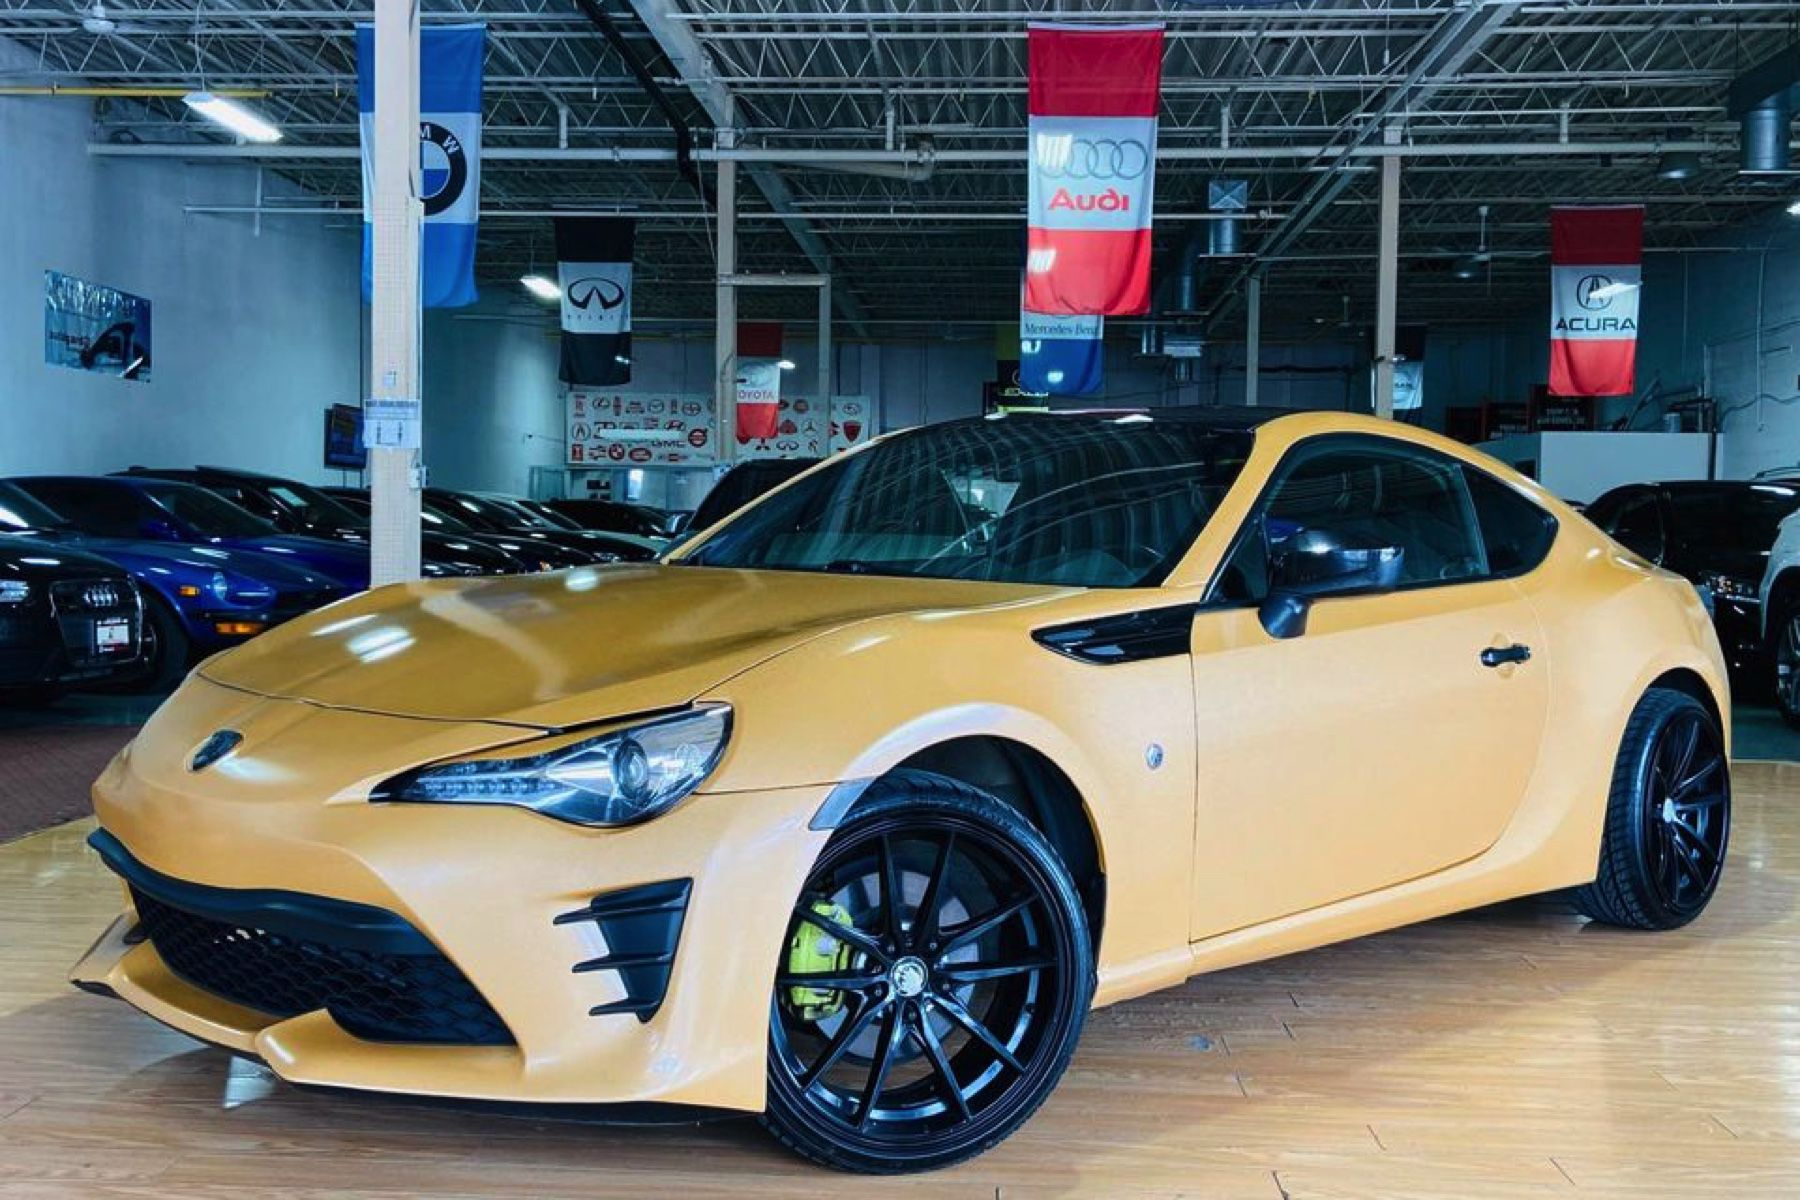 There's a Toyota 86 dressed as a Lamborghini for sale in Ontario on Marketplace